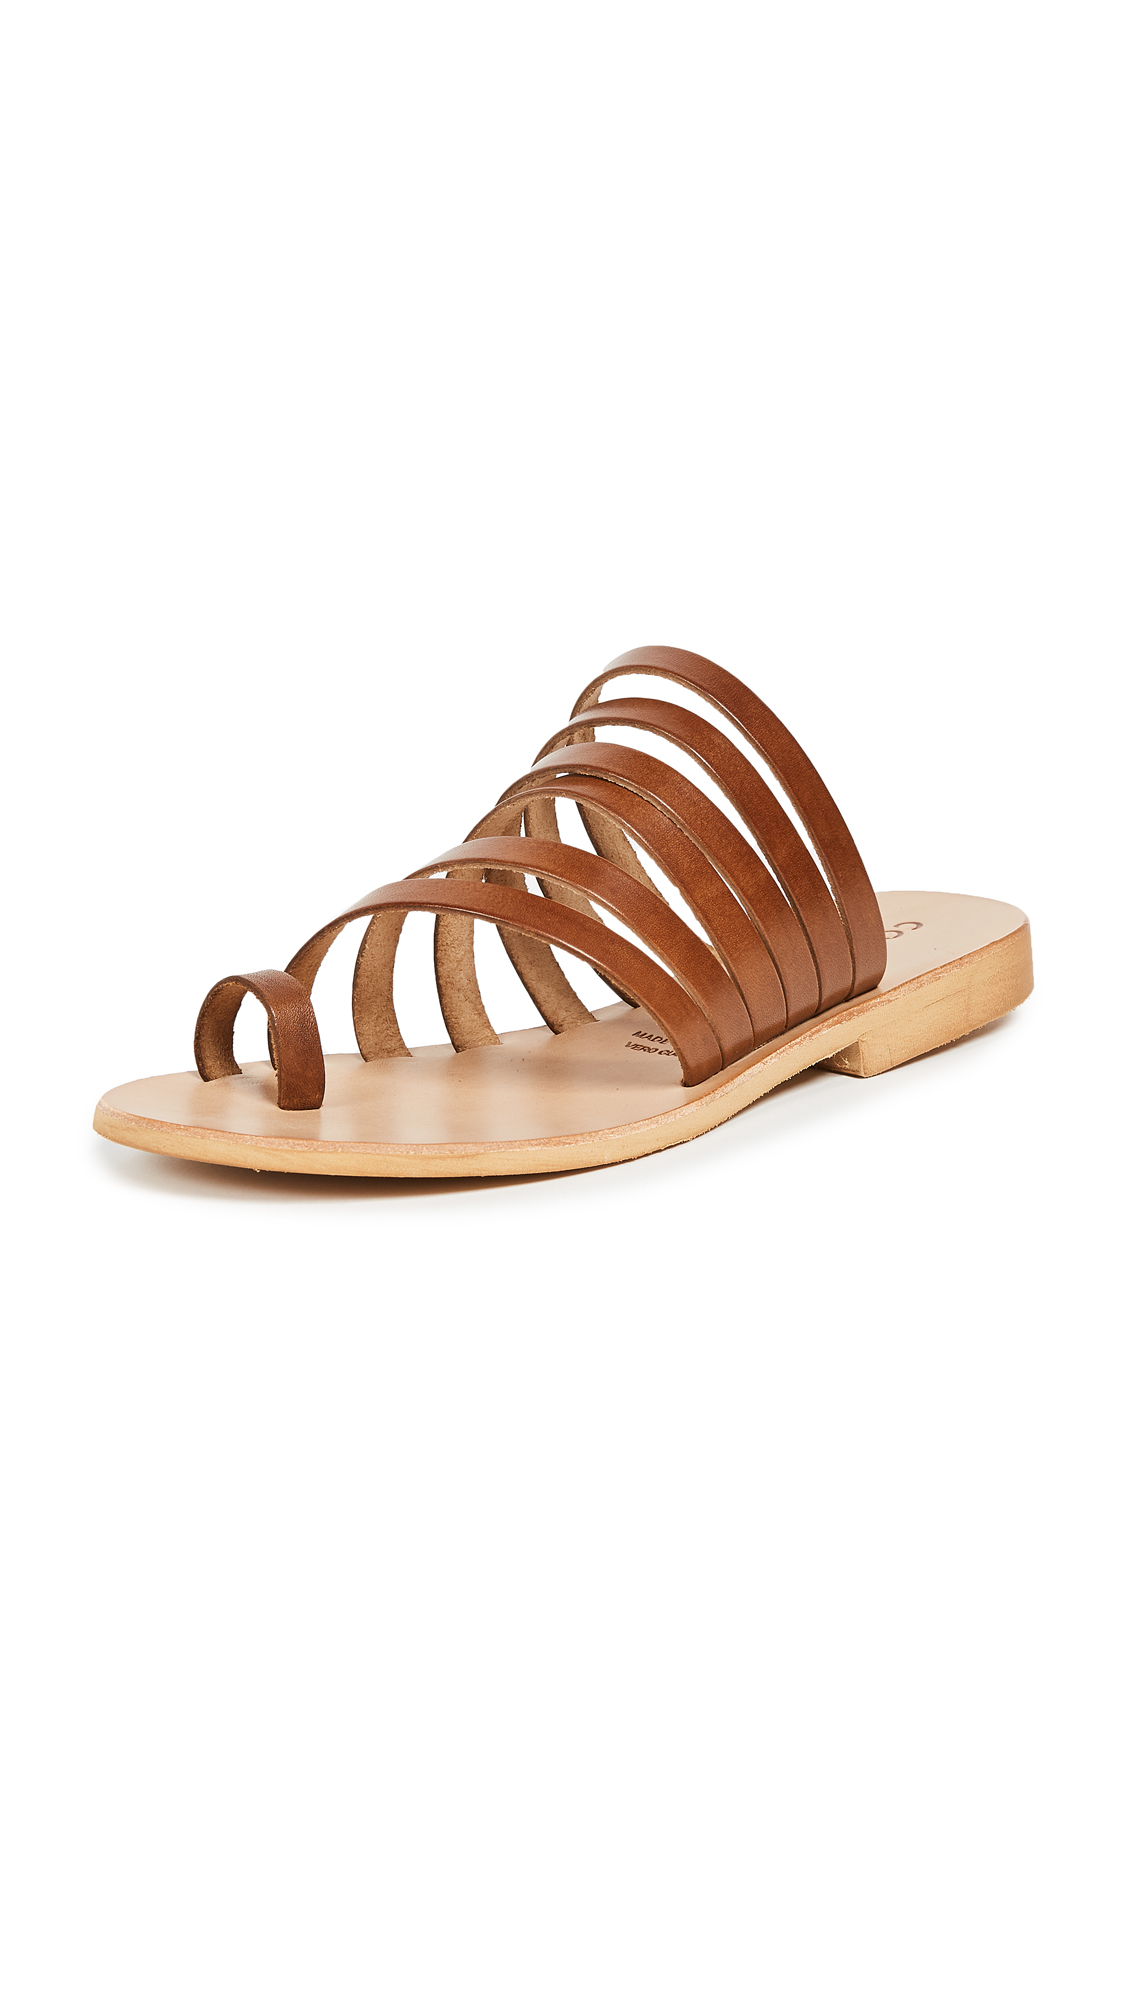 Cocobelle Palermo Strappy Slides - Brown